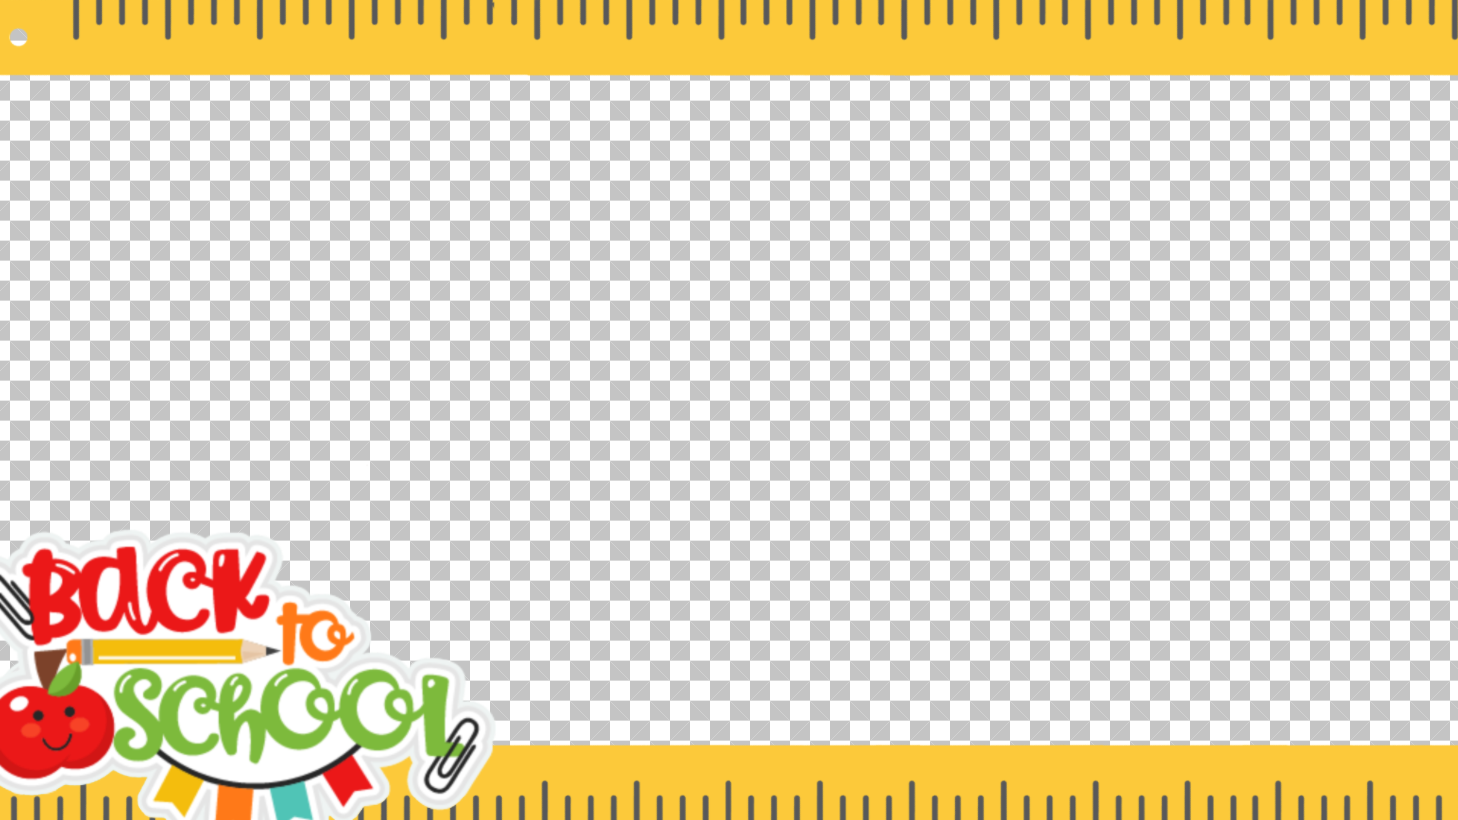 A 16:9 photo frame featuring a border made from rulers and a Back to School sticker.